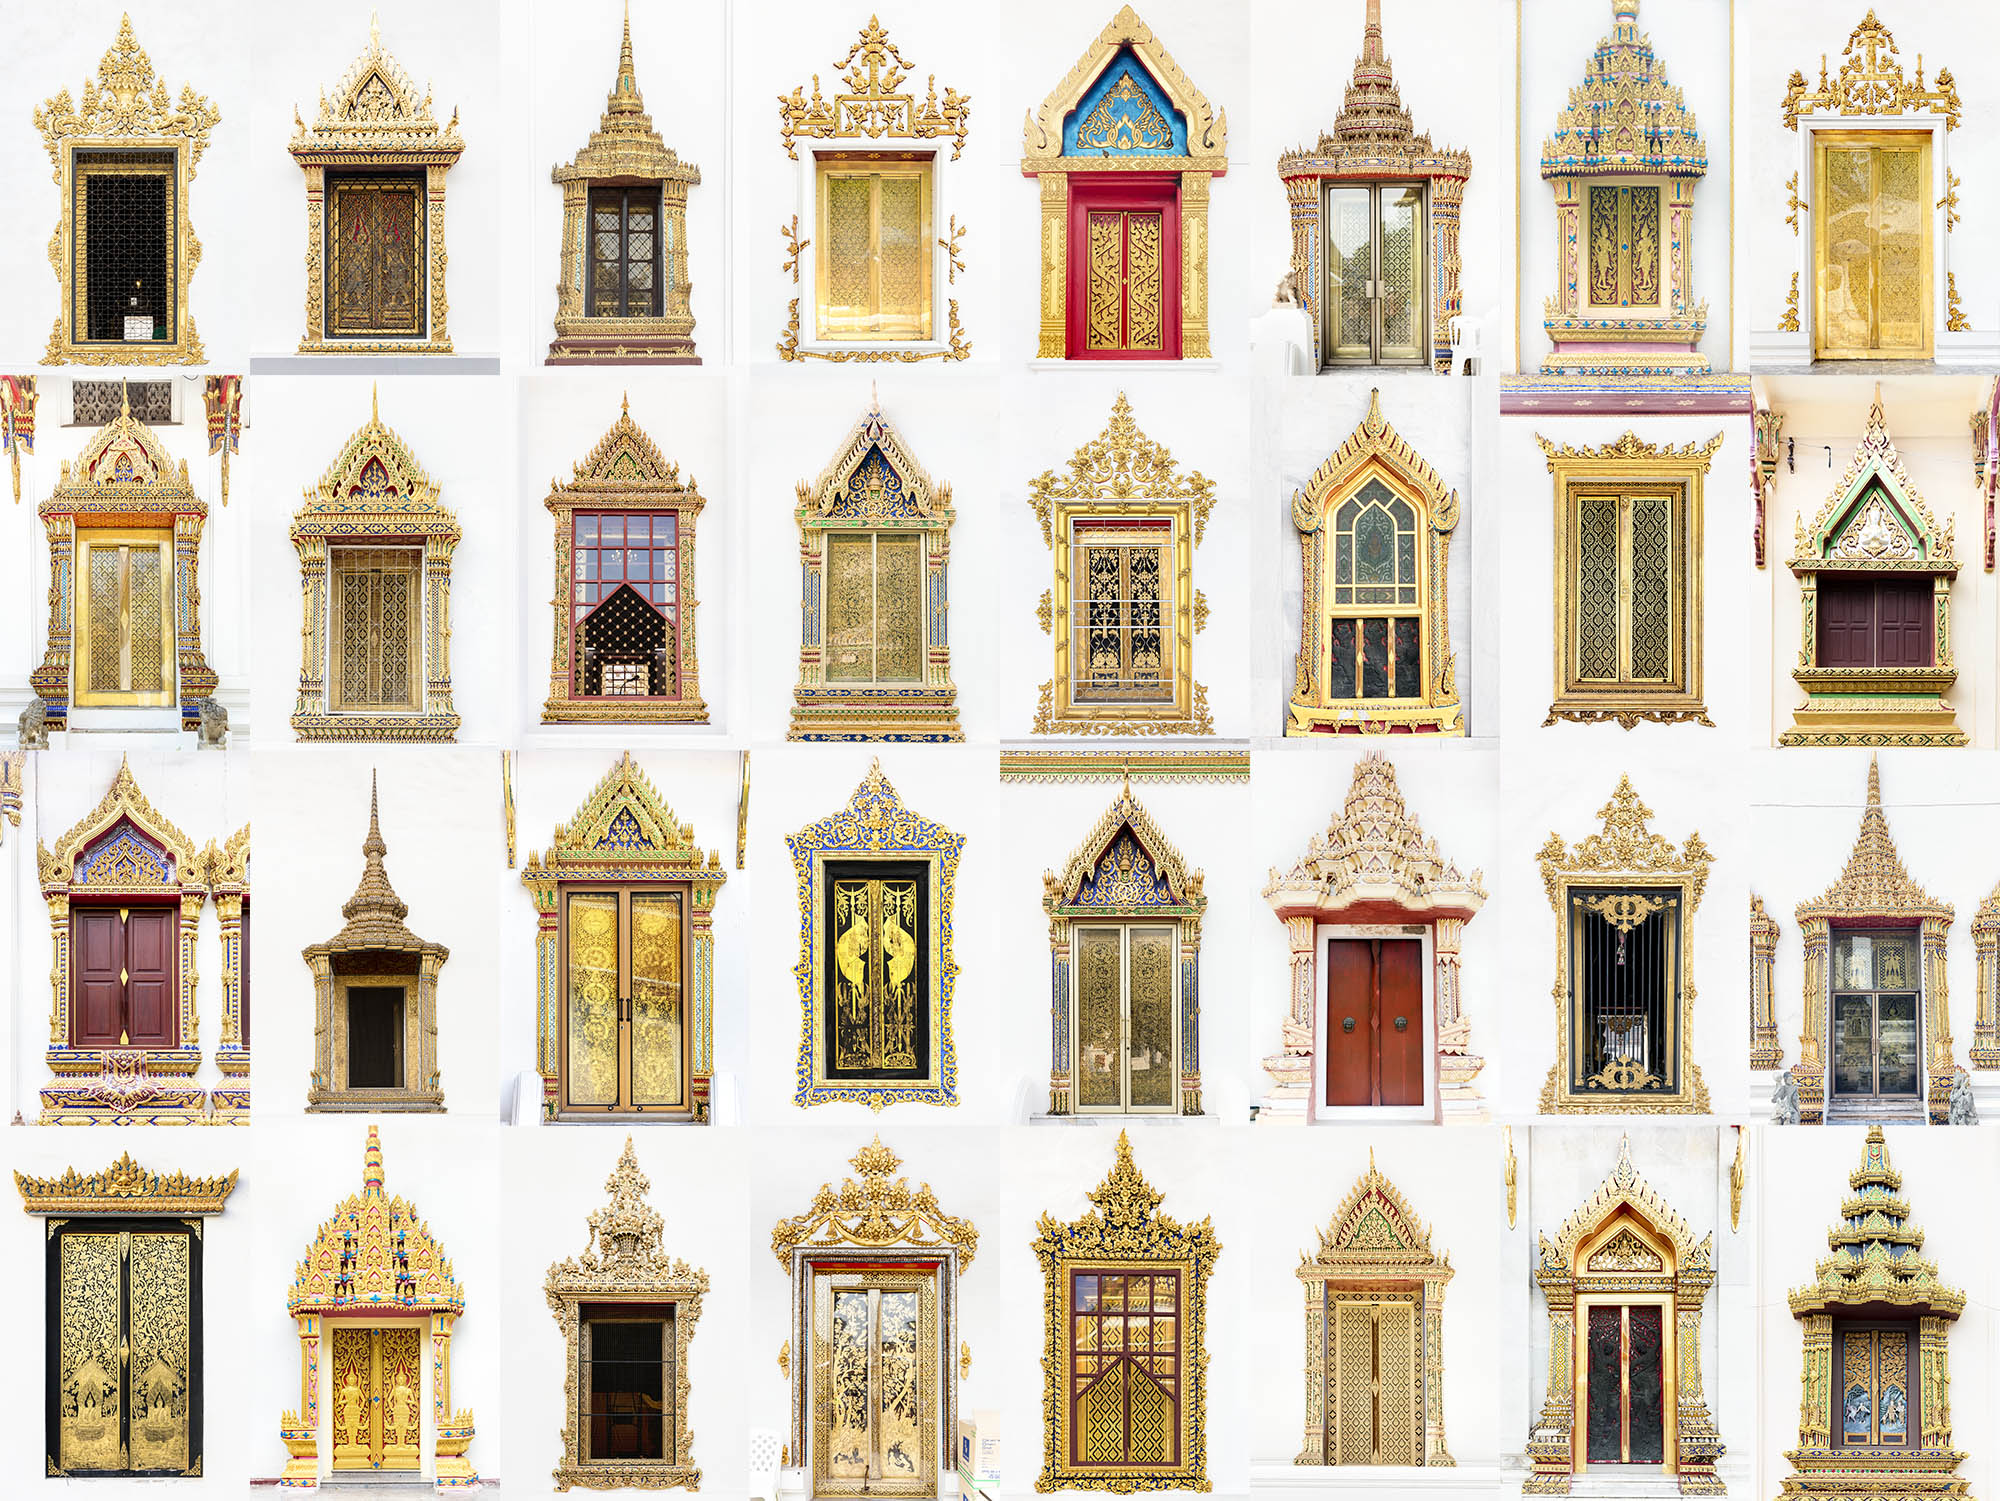 Windows & Doors of the World - Thai Temples